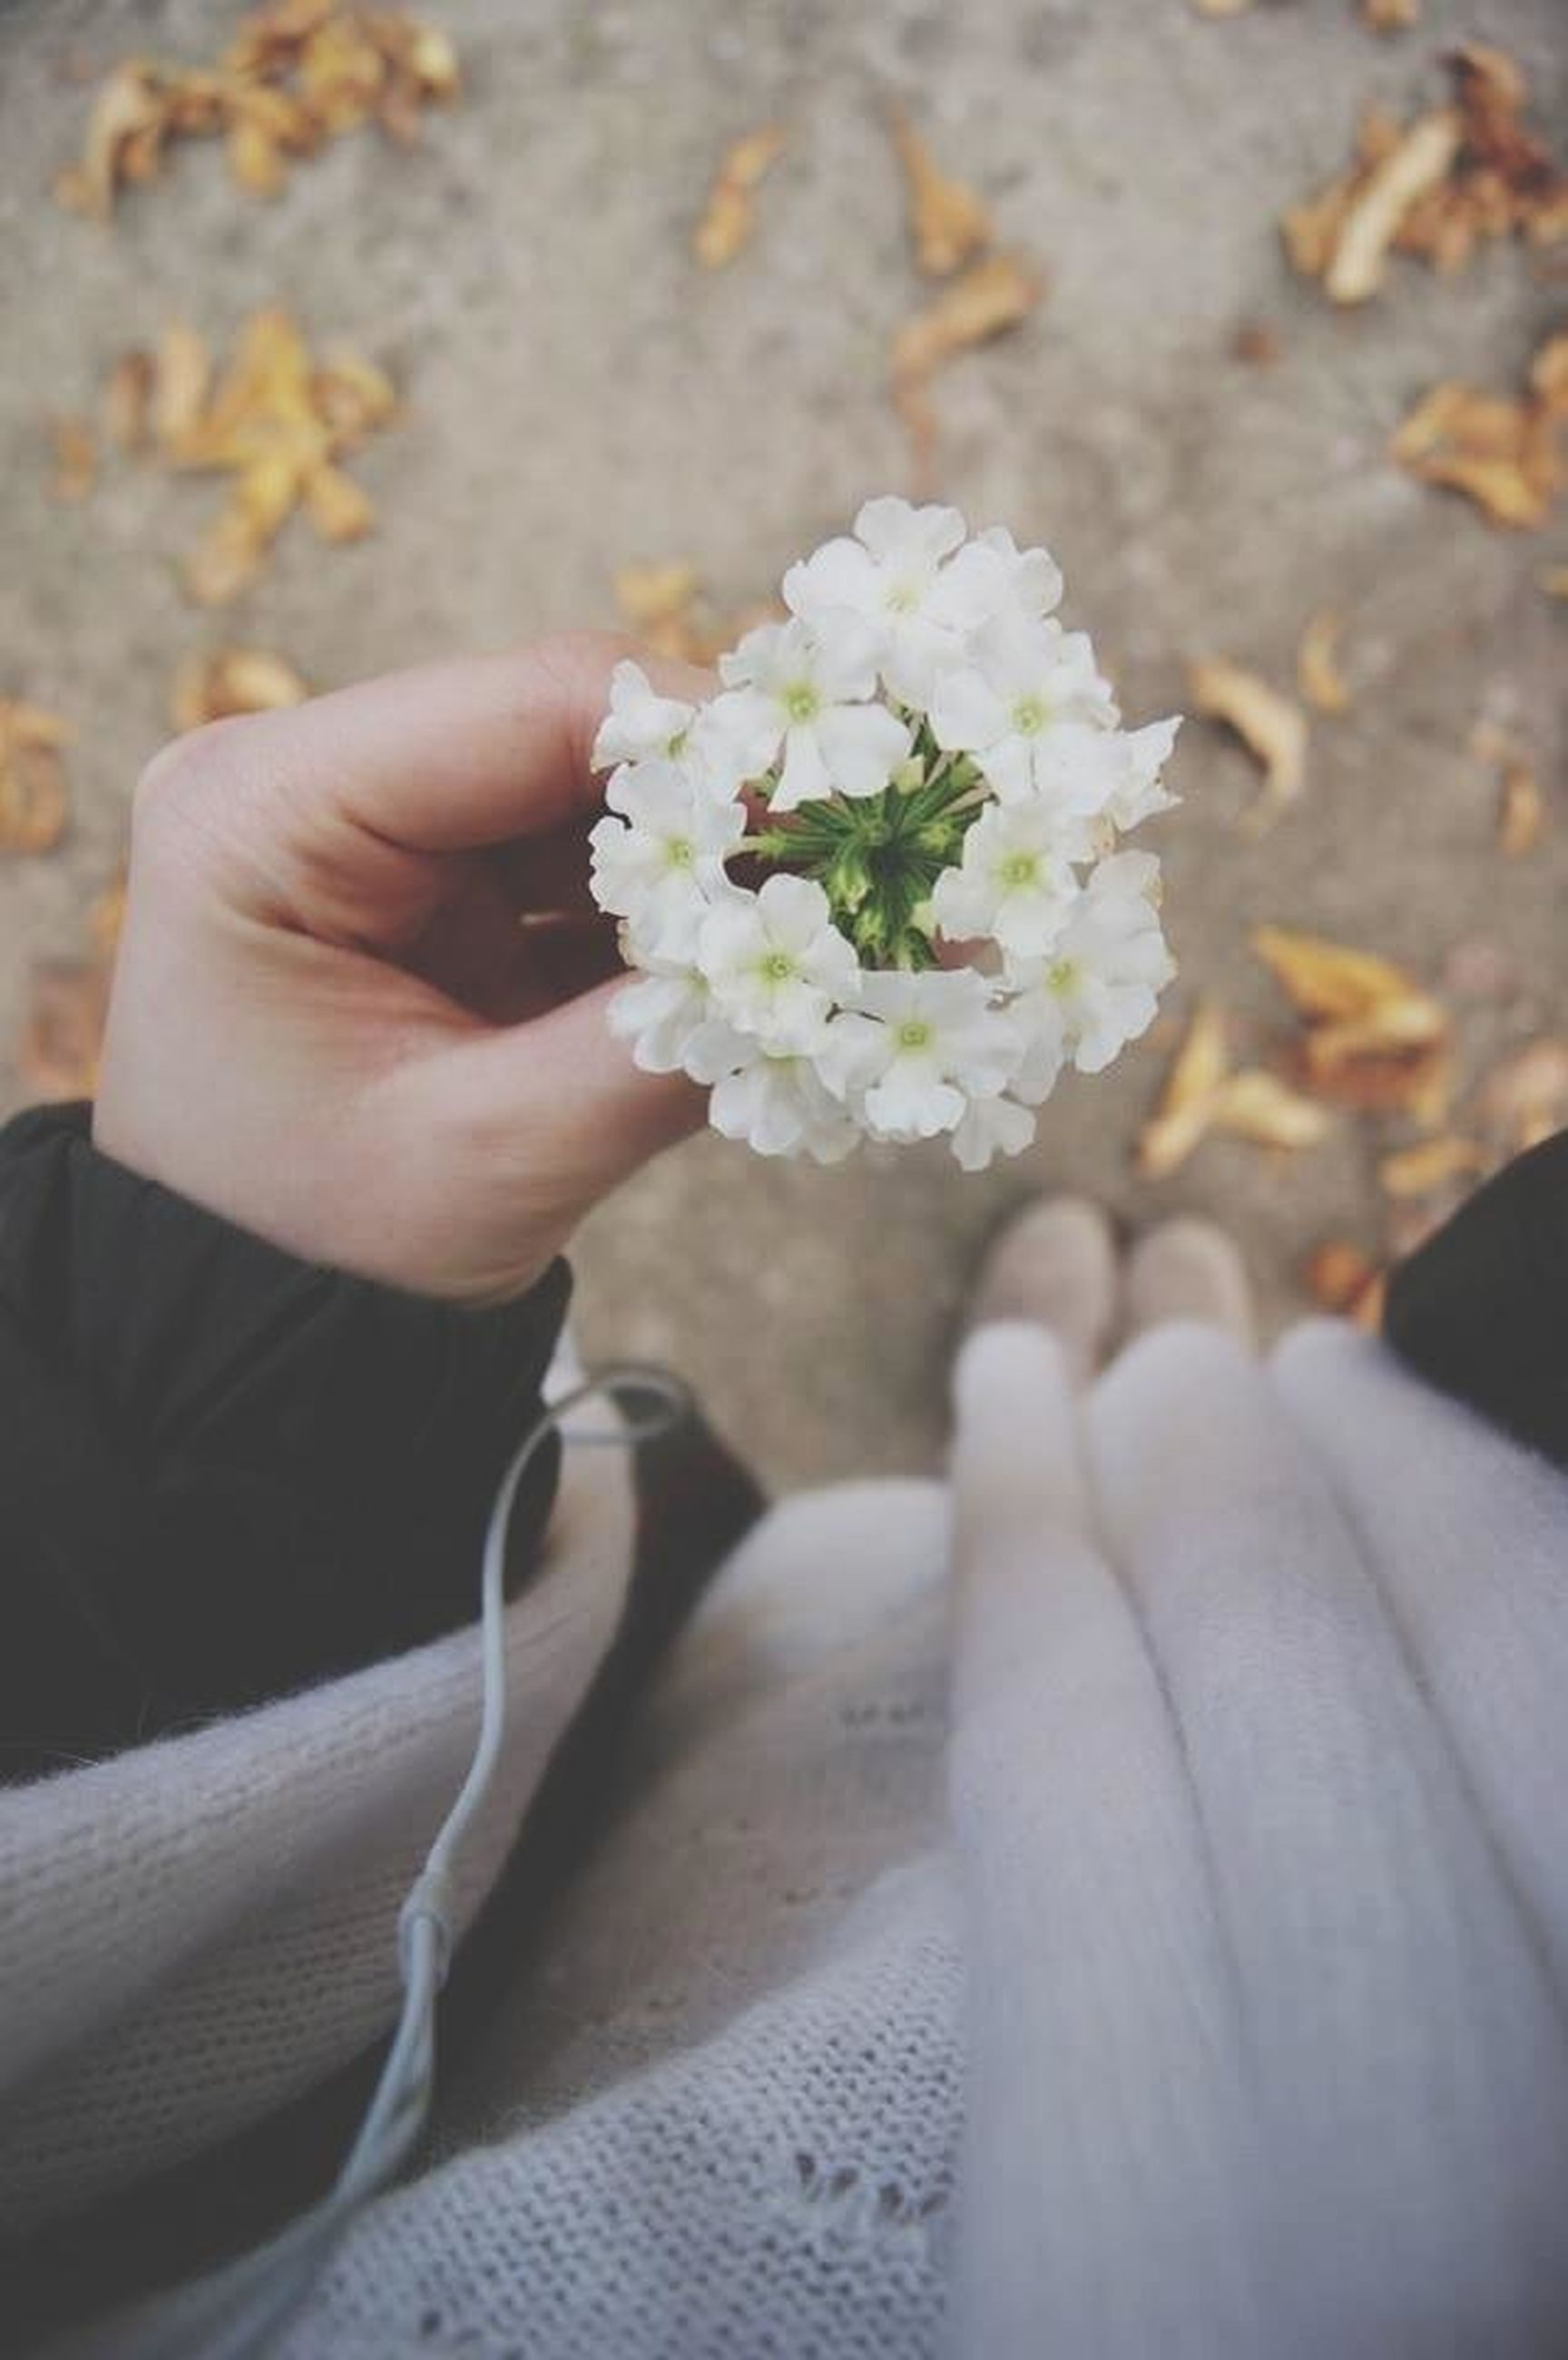 flower, person, freshness, petal, holding, fragility, flower head, white color, part of, close-up, high angle view, beauty in nature, lifestyles, focus on foreground, cropped, human finger, unrecognizable person